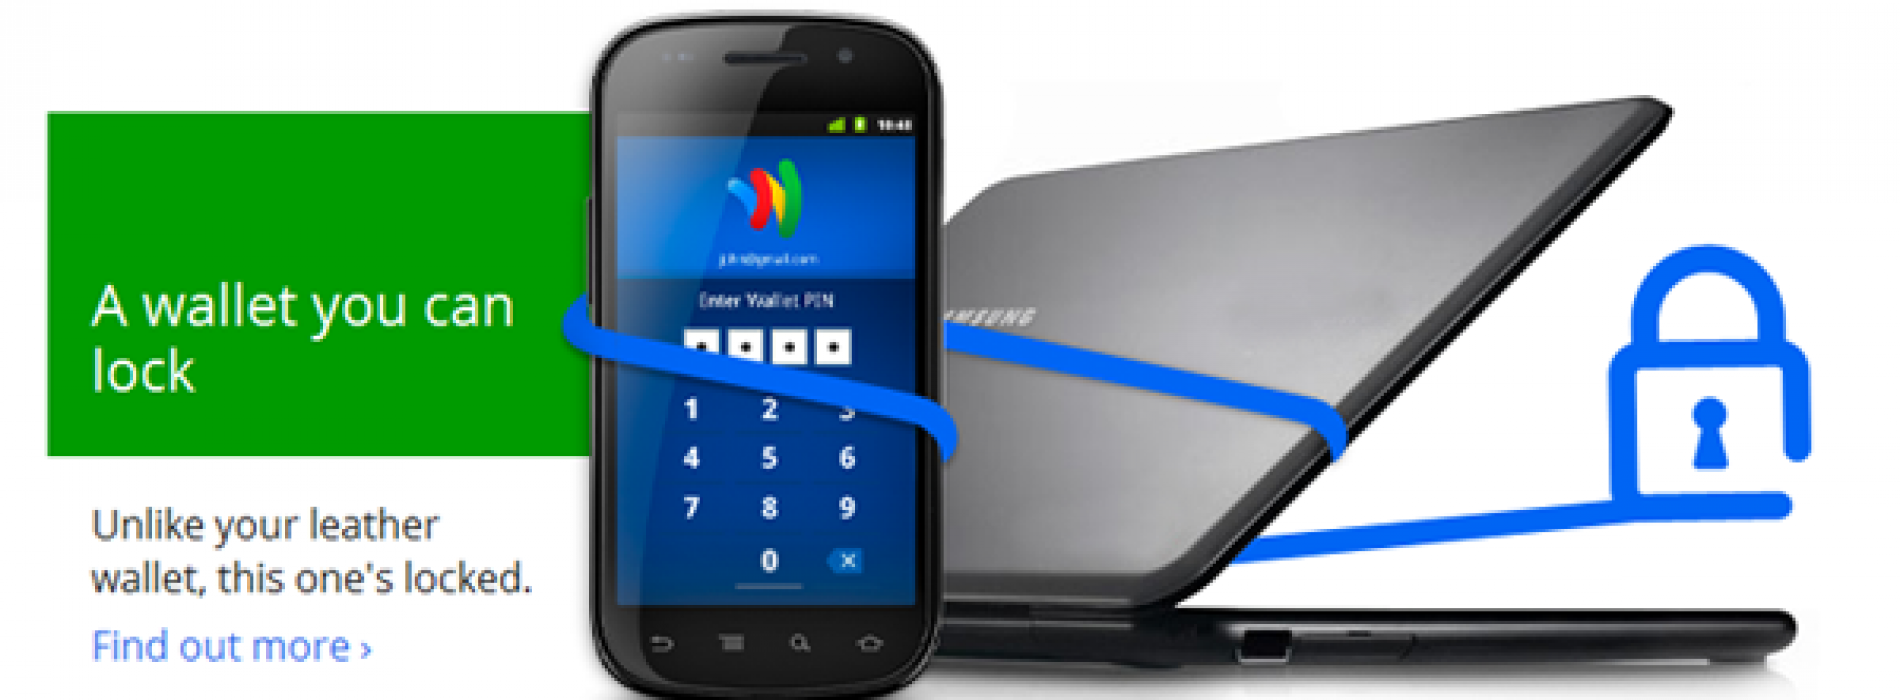 Google responds to Google Wallet security vulnerability